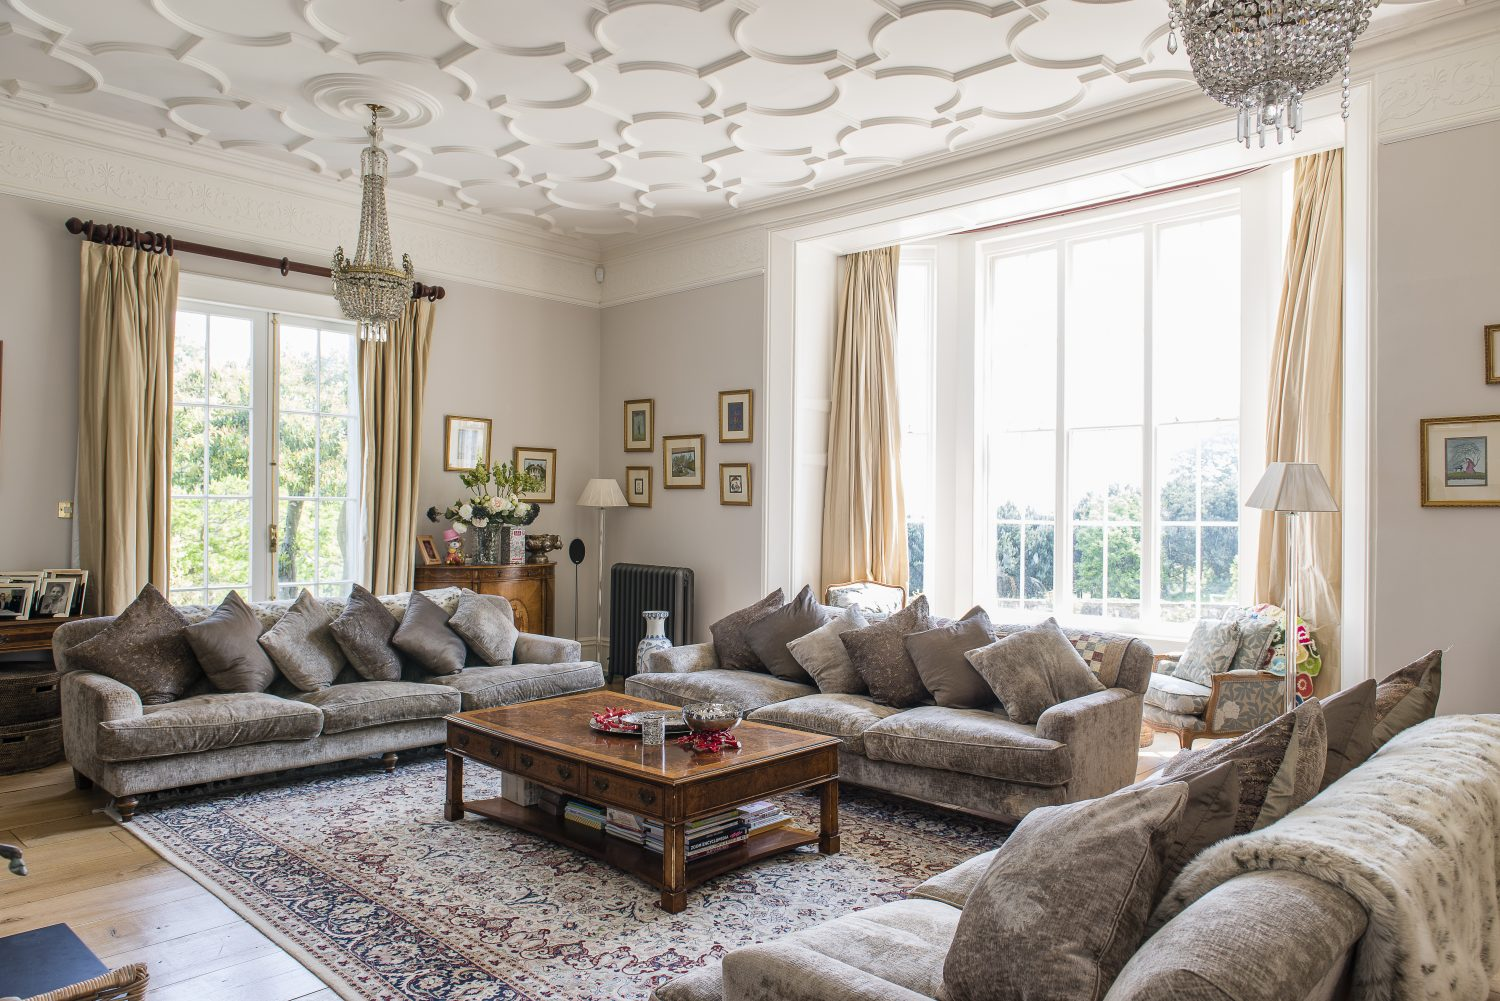 Ornate heirloom chandeliers draw the eye to the ceilings in the sitting room